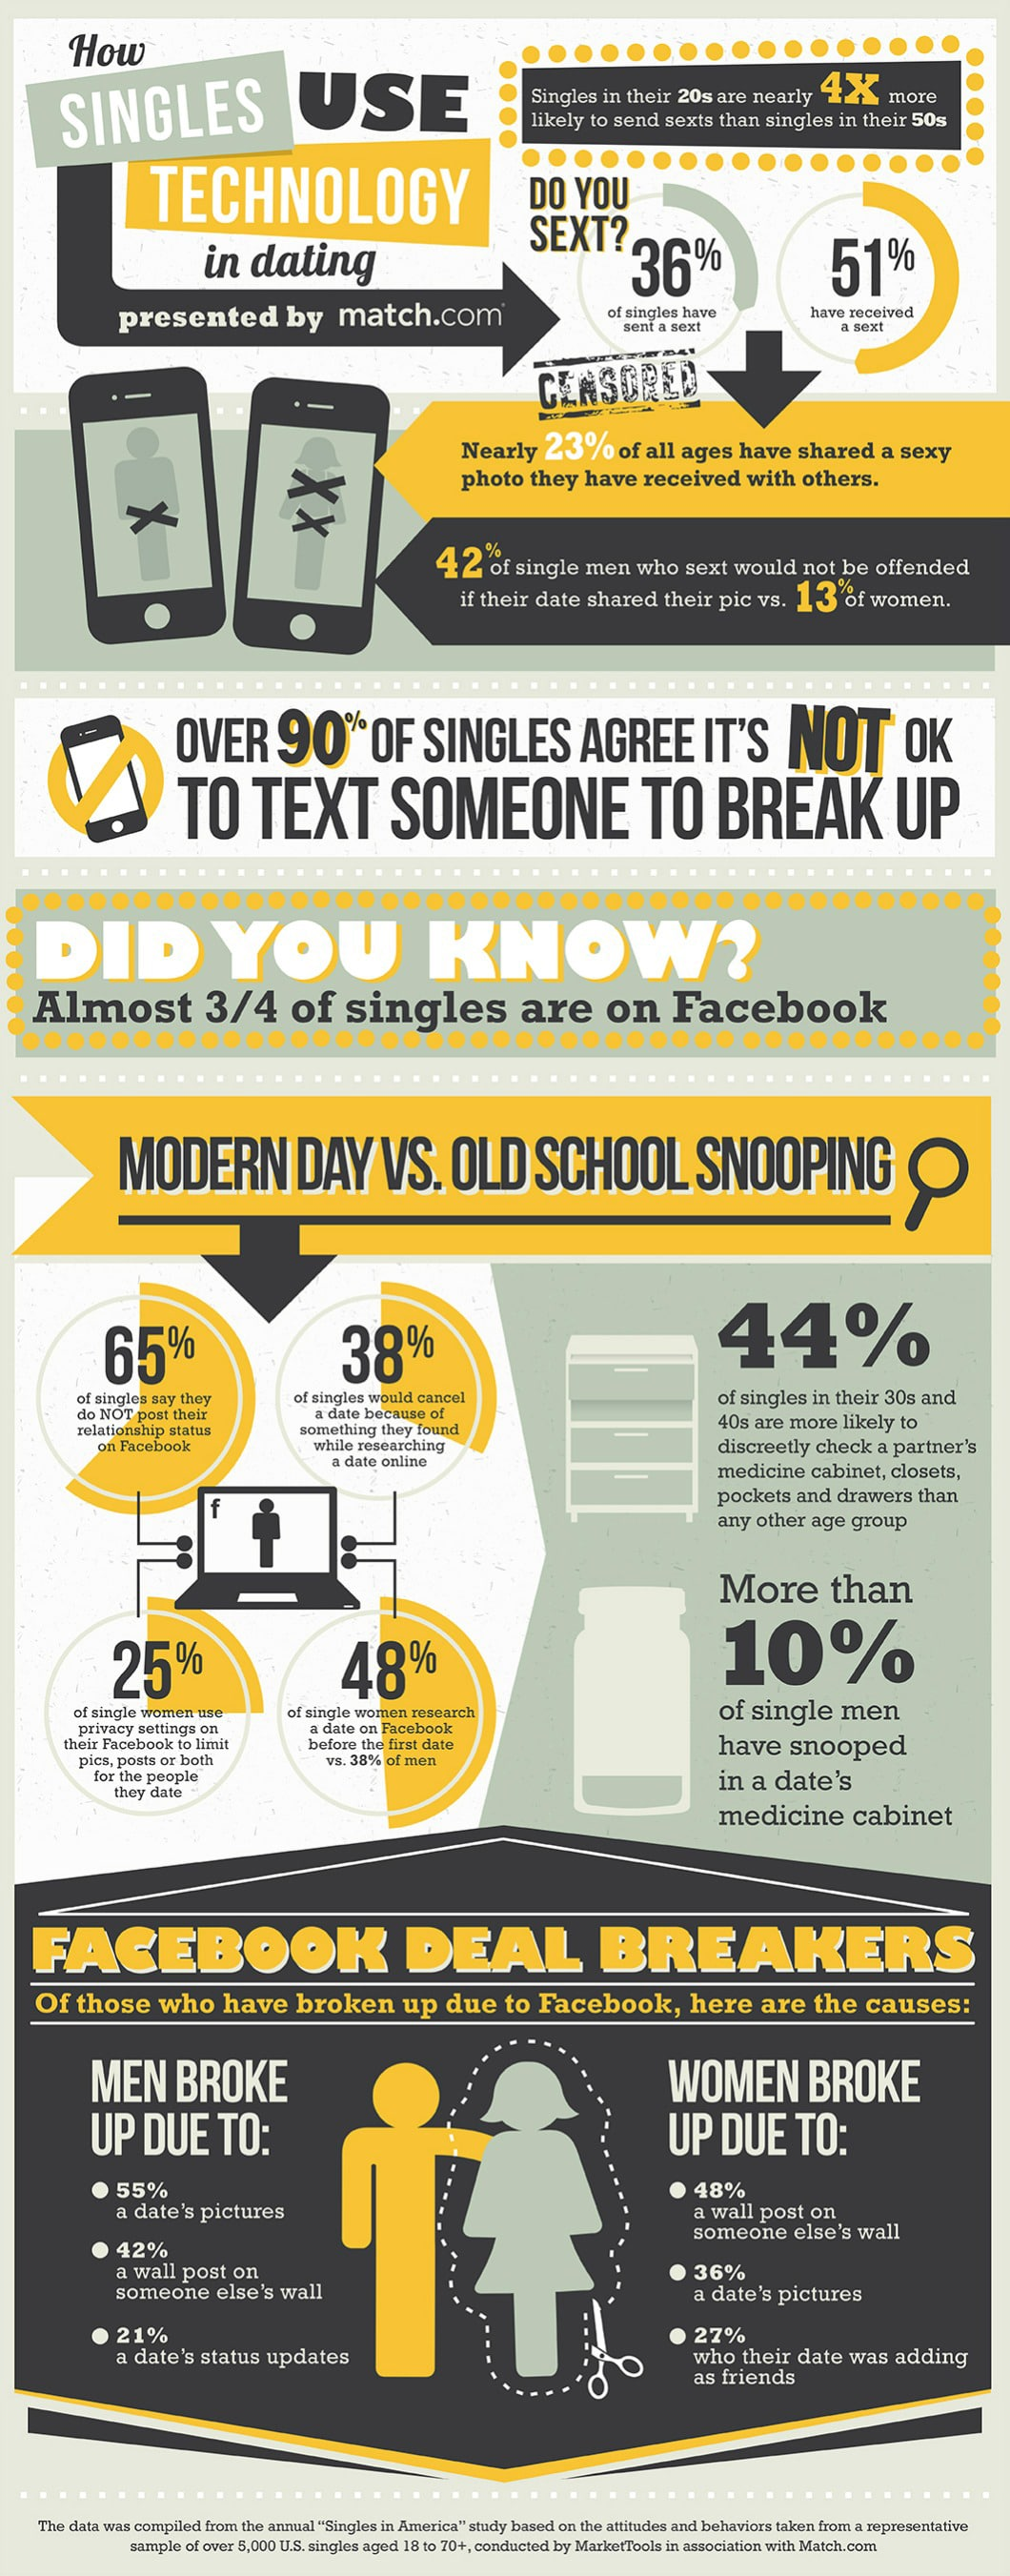 The Dos & Don'ts Of Using Technology In Dating [Infographic]